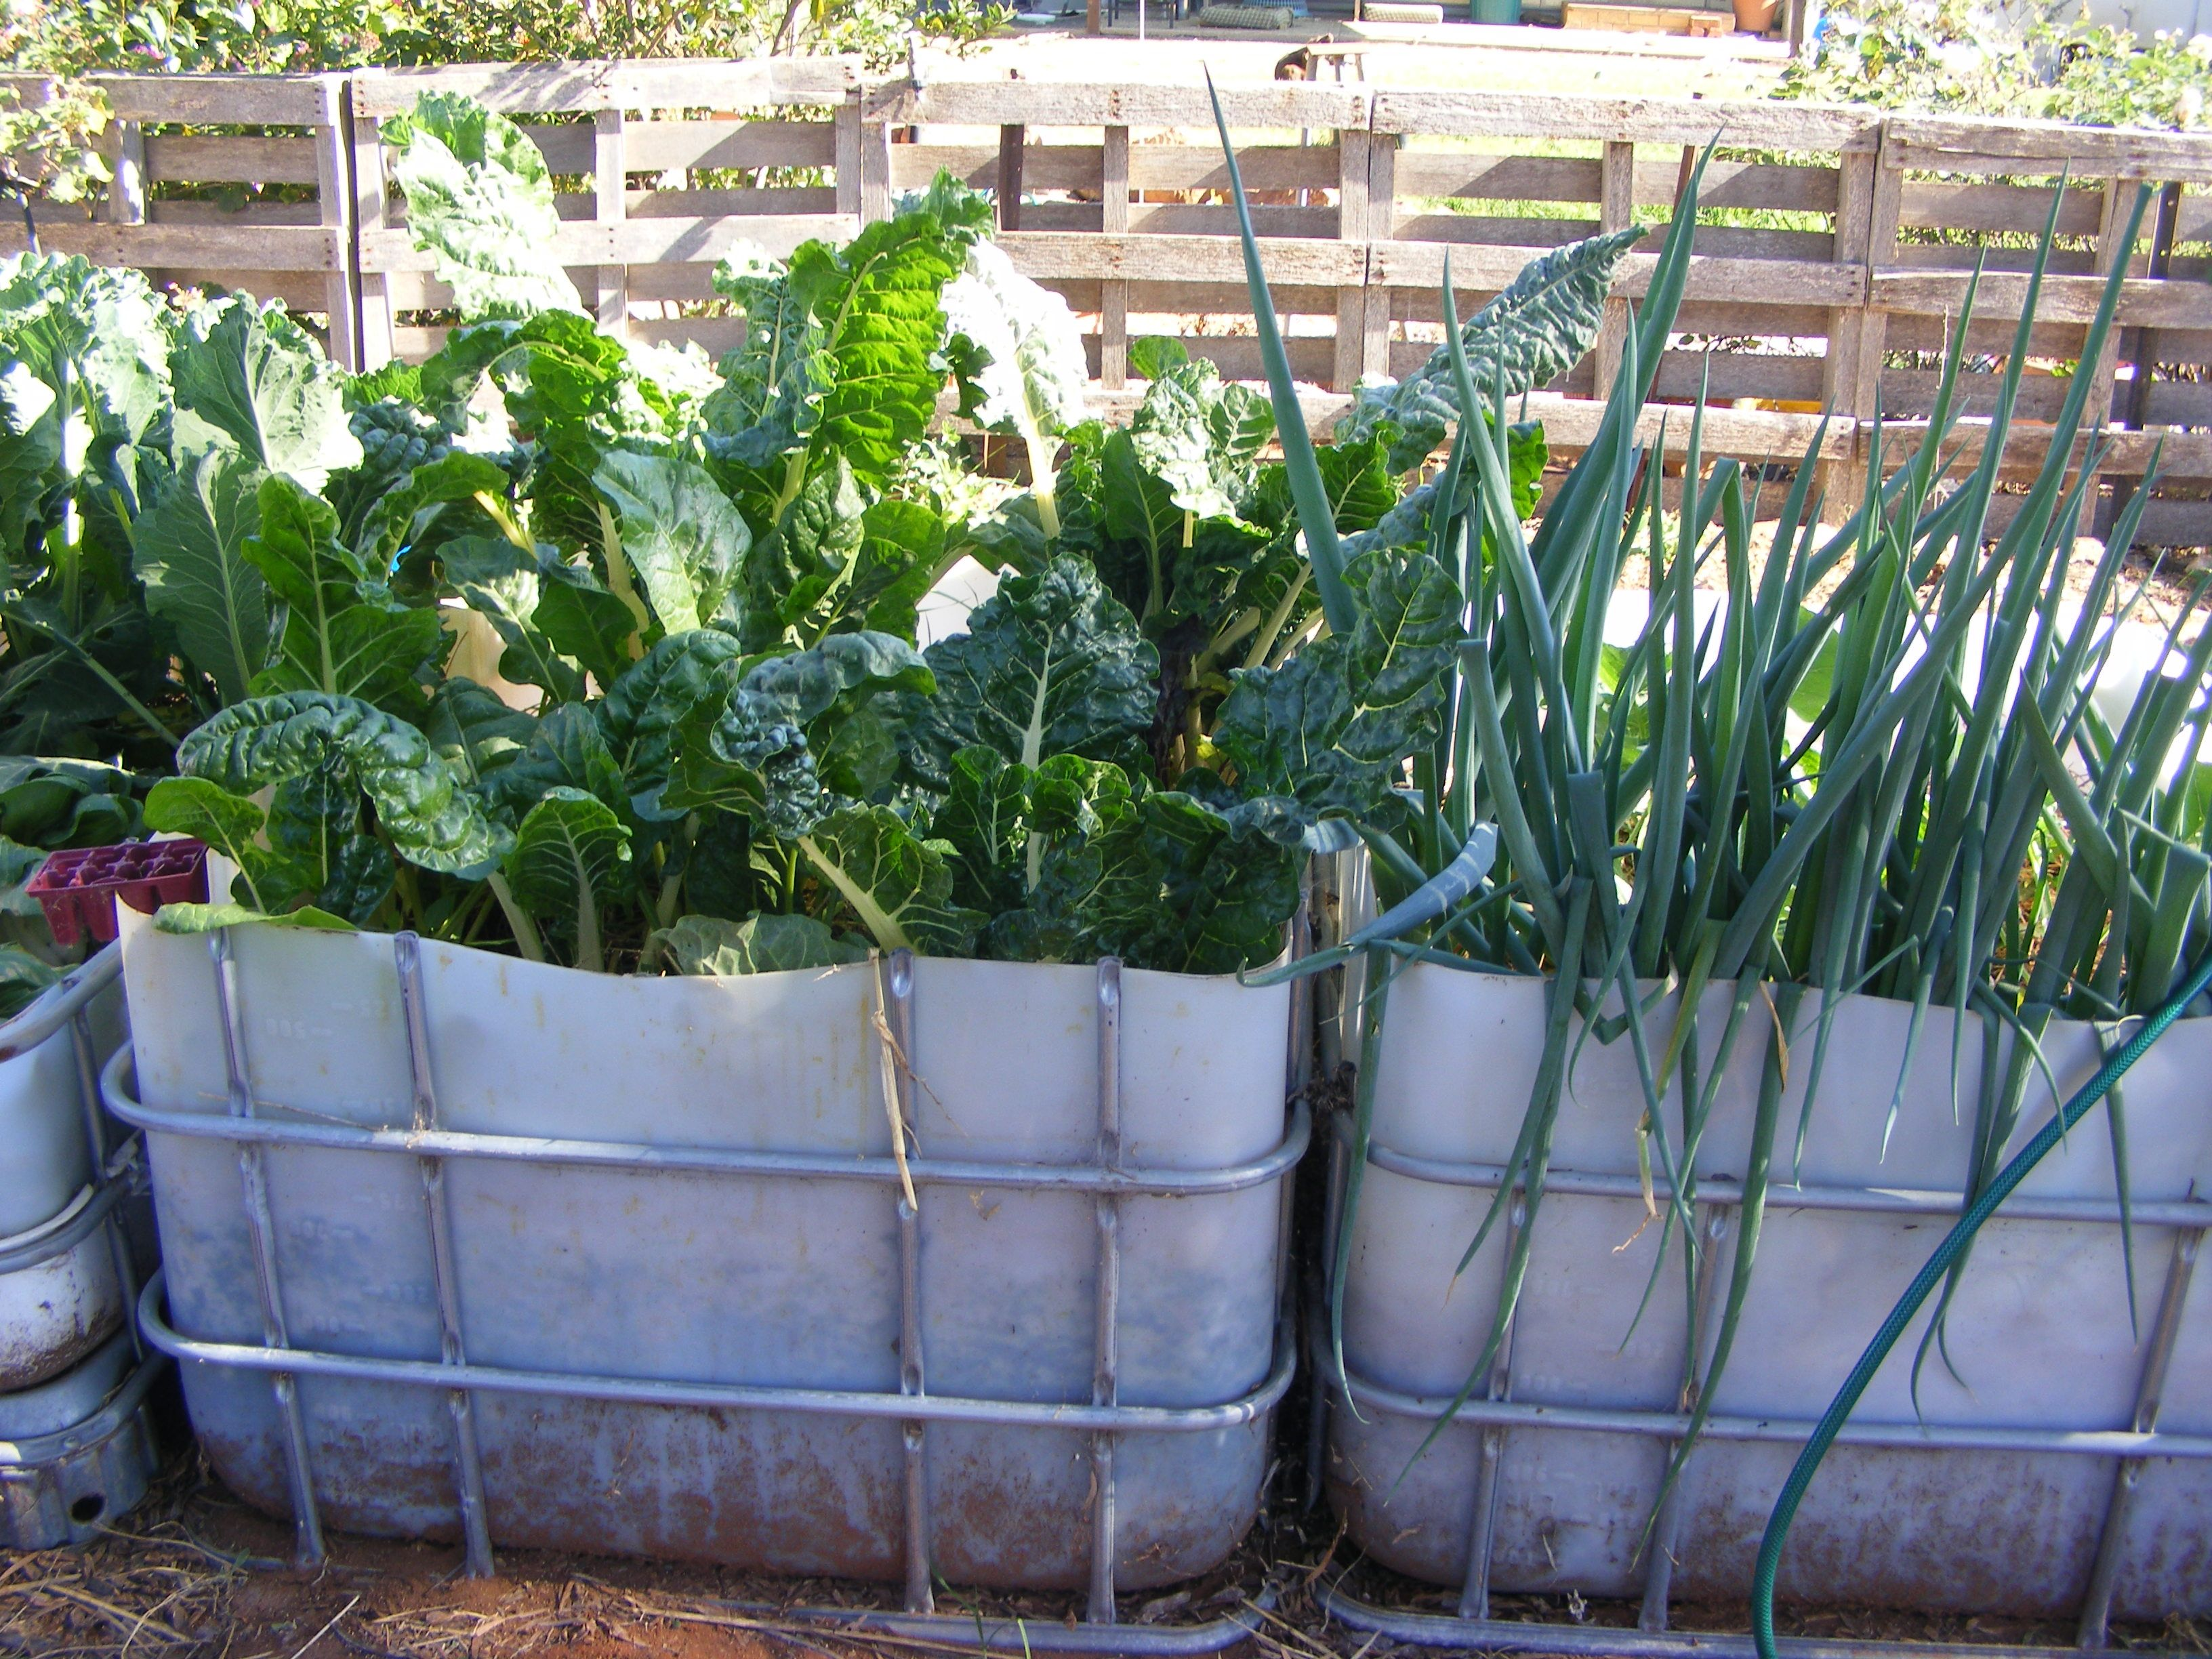 Raised Garden Beds Made From Ibc 1000ltr Containers Cut In